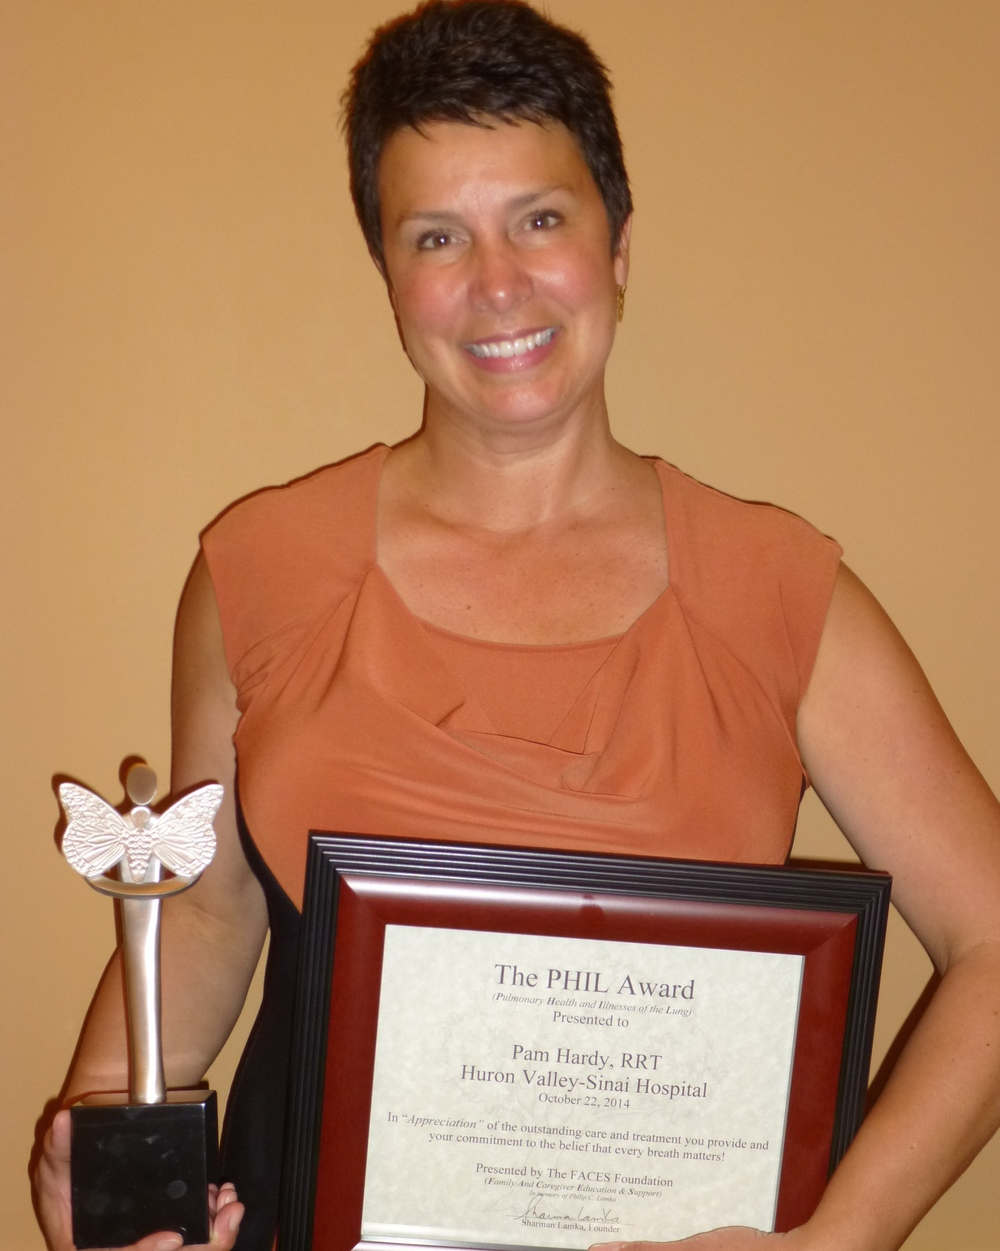 Pam Hardy, RRT - DMC Huron Valley-Sinai Hospital, Commerce Twp., MI